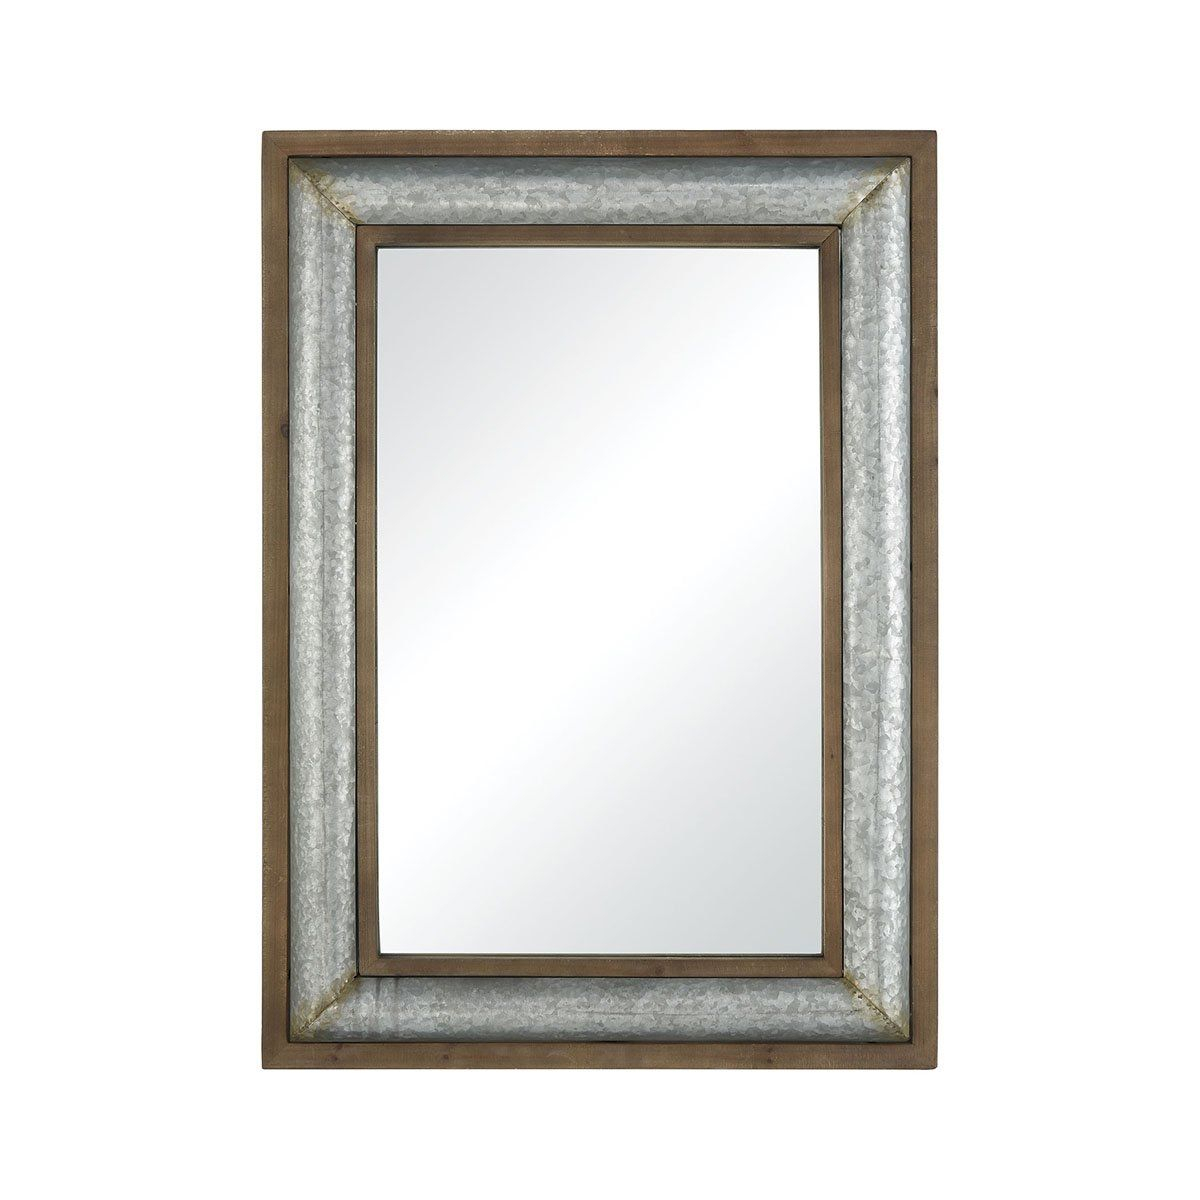 Mirror Beaded 44X56 In 2019 | Mirrors | Mirror, Oversized With Regard To Hogge Modern Brushed Nickel Large Frame Wall Mirrors (Image 15 of 20)